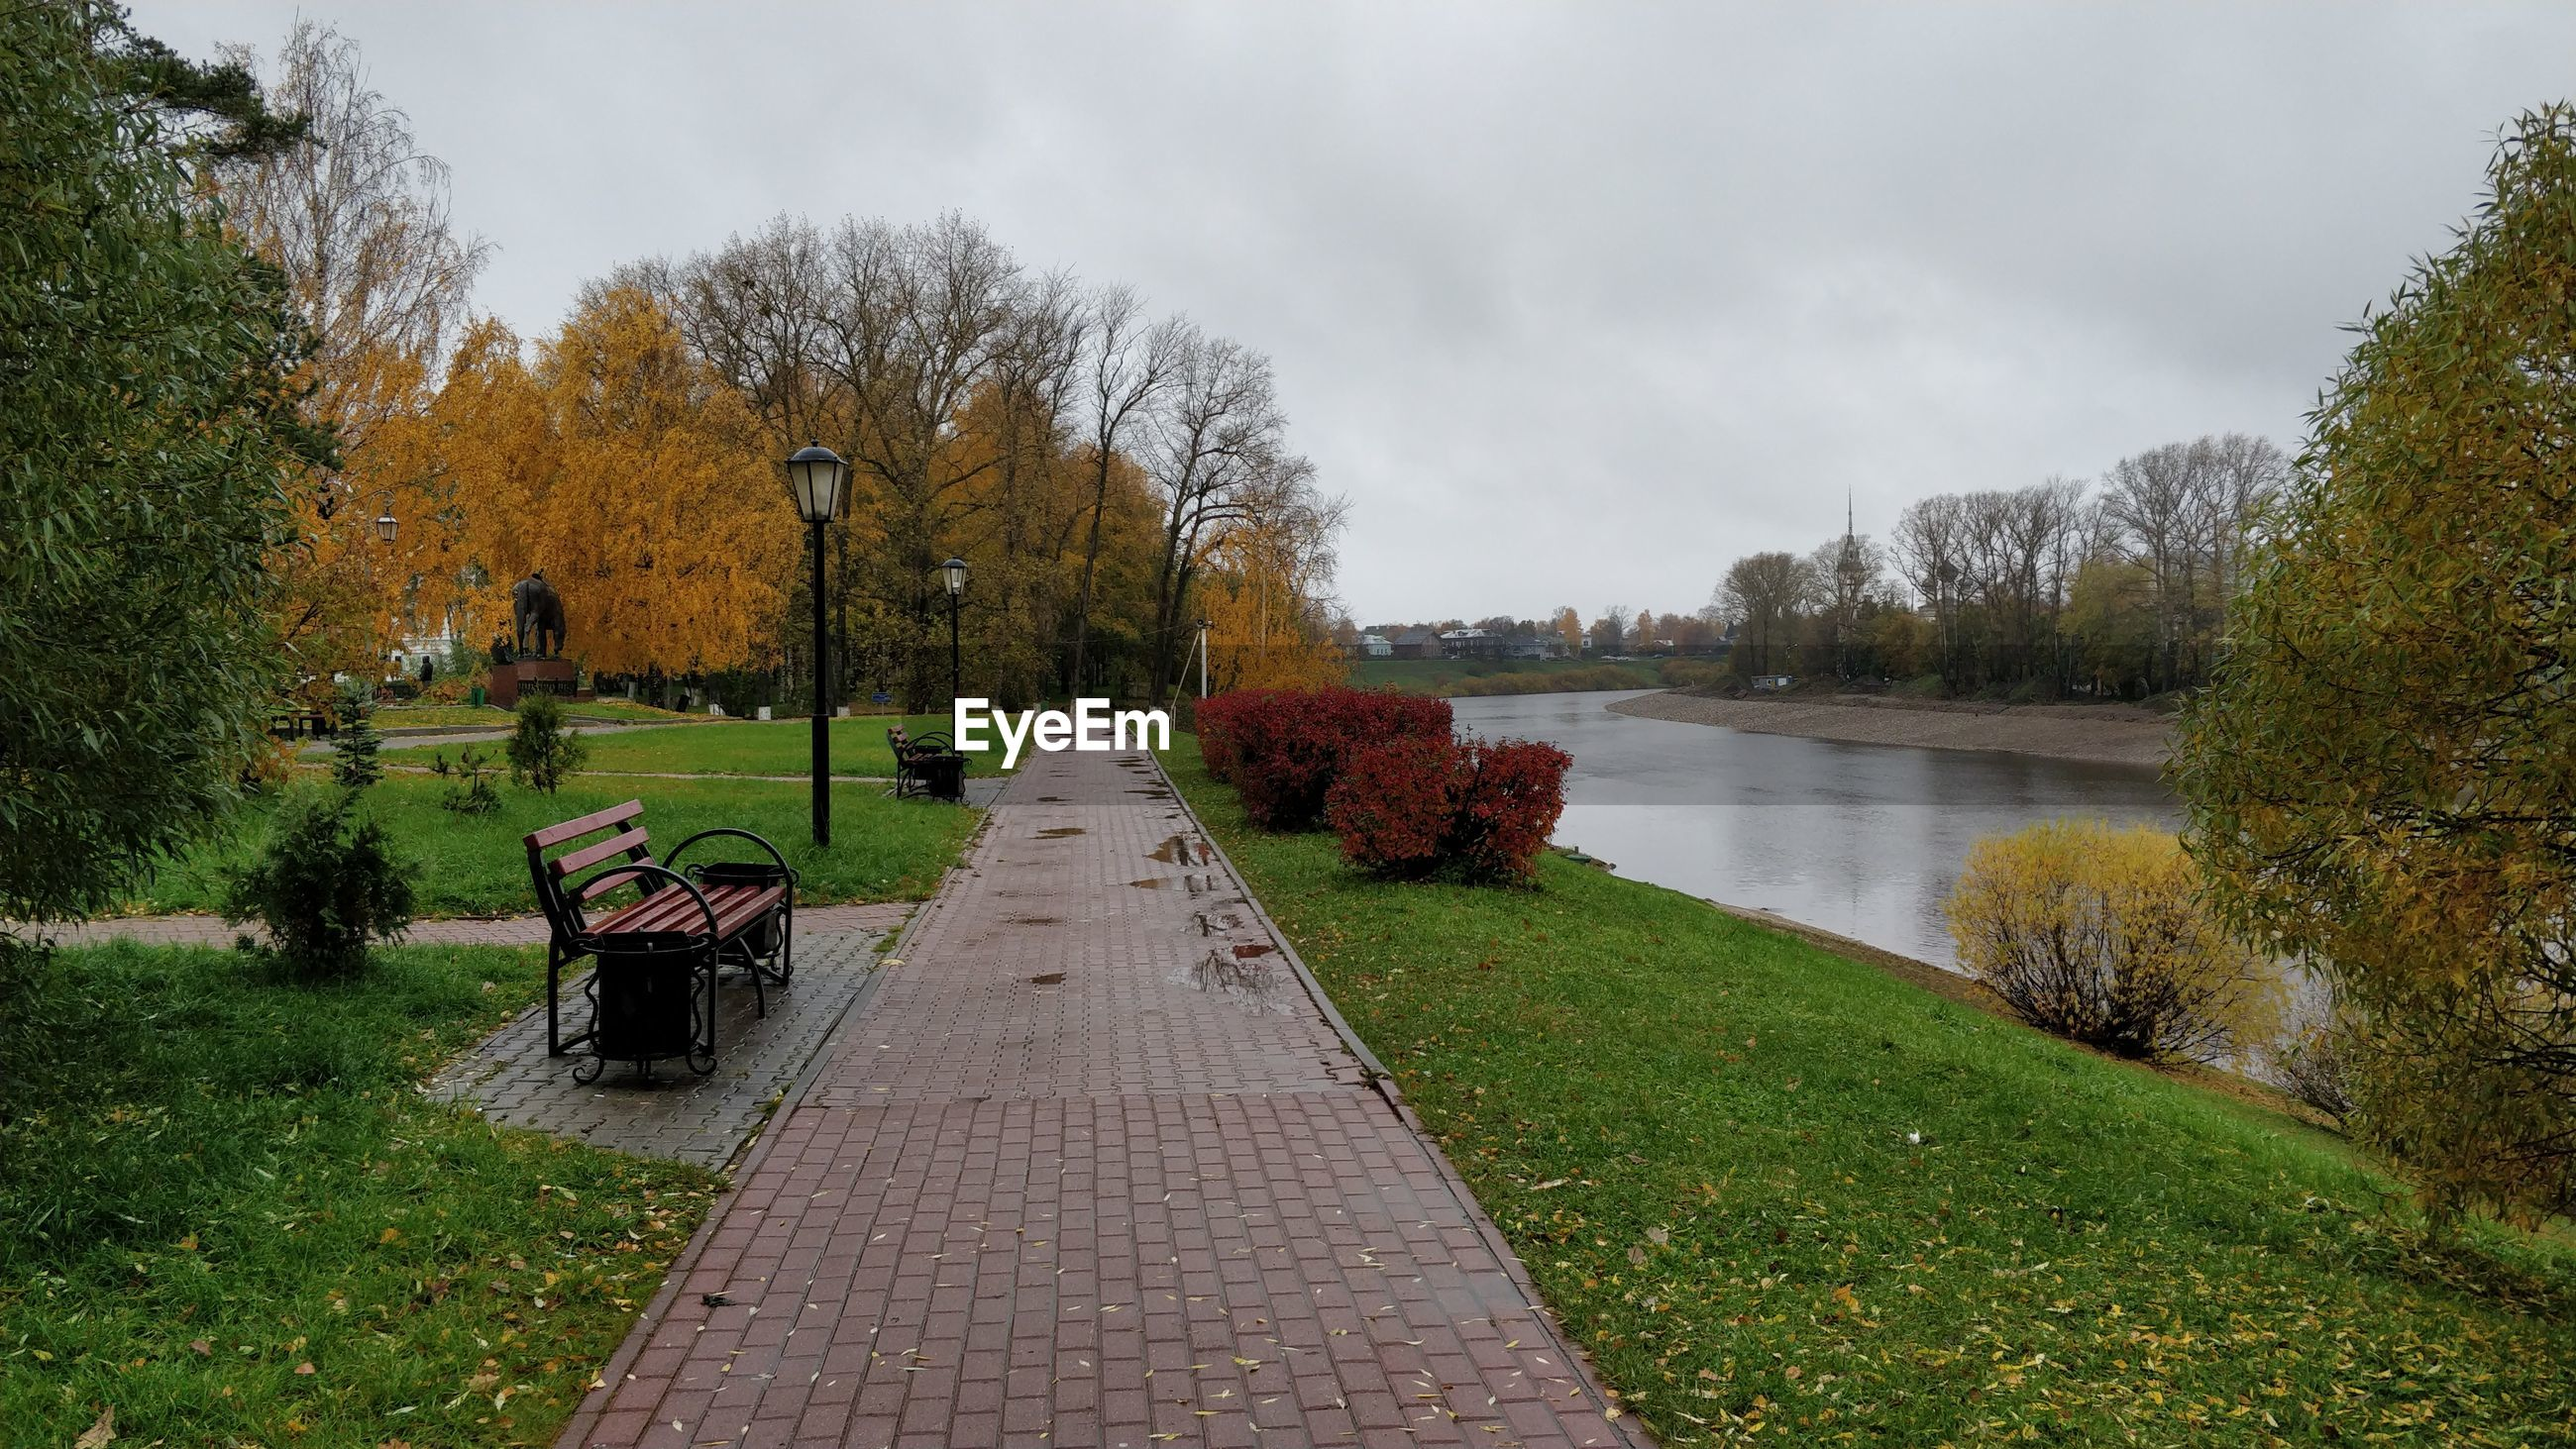 Park bench by lake against sky during autumn